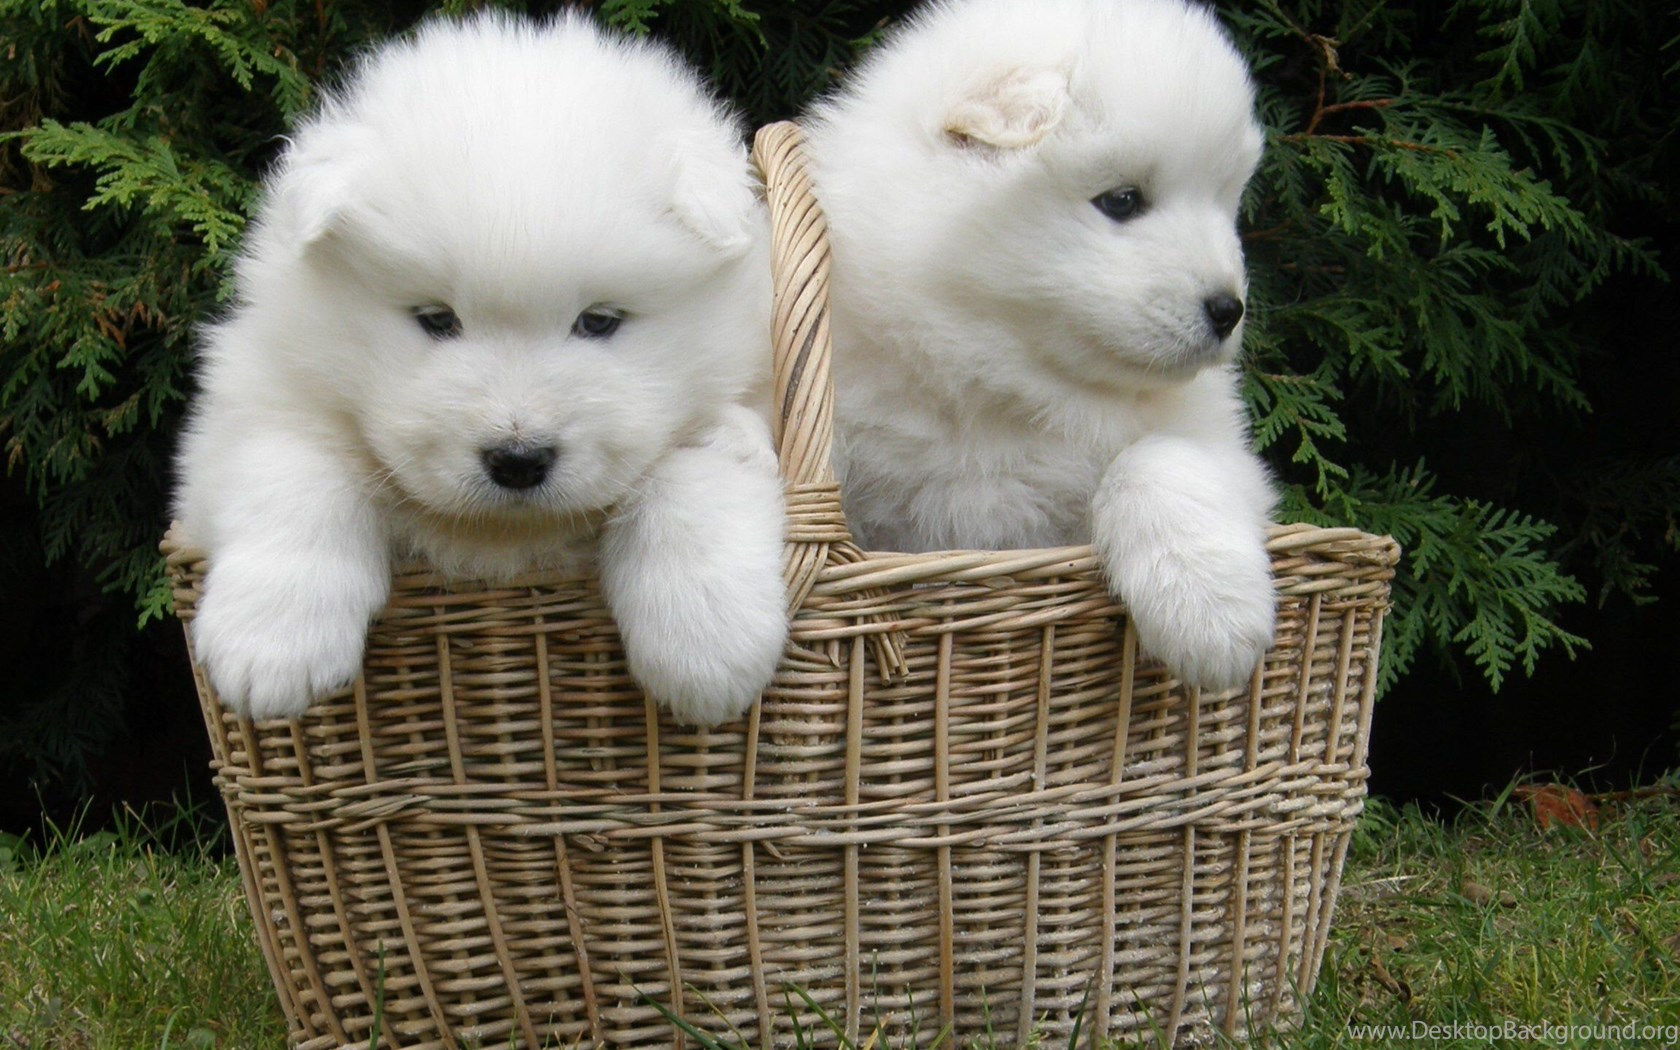 Samoyed Dog Dogs Canine Baby Puppy Wallpapers Samoyed Puppy Wallpaper Android 1680x1050 Download Hd Wallpaper Wallpapertip